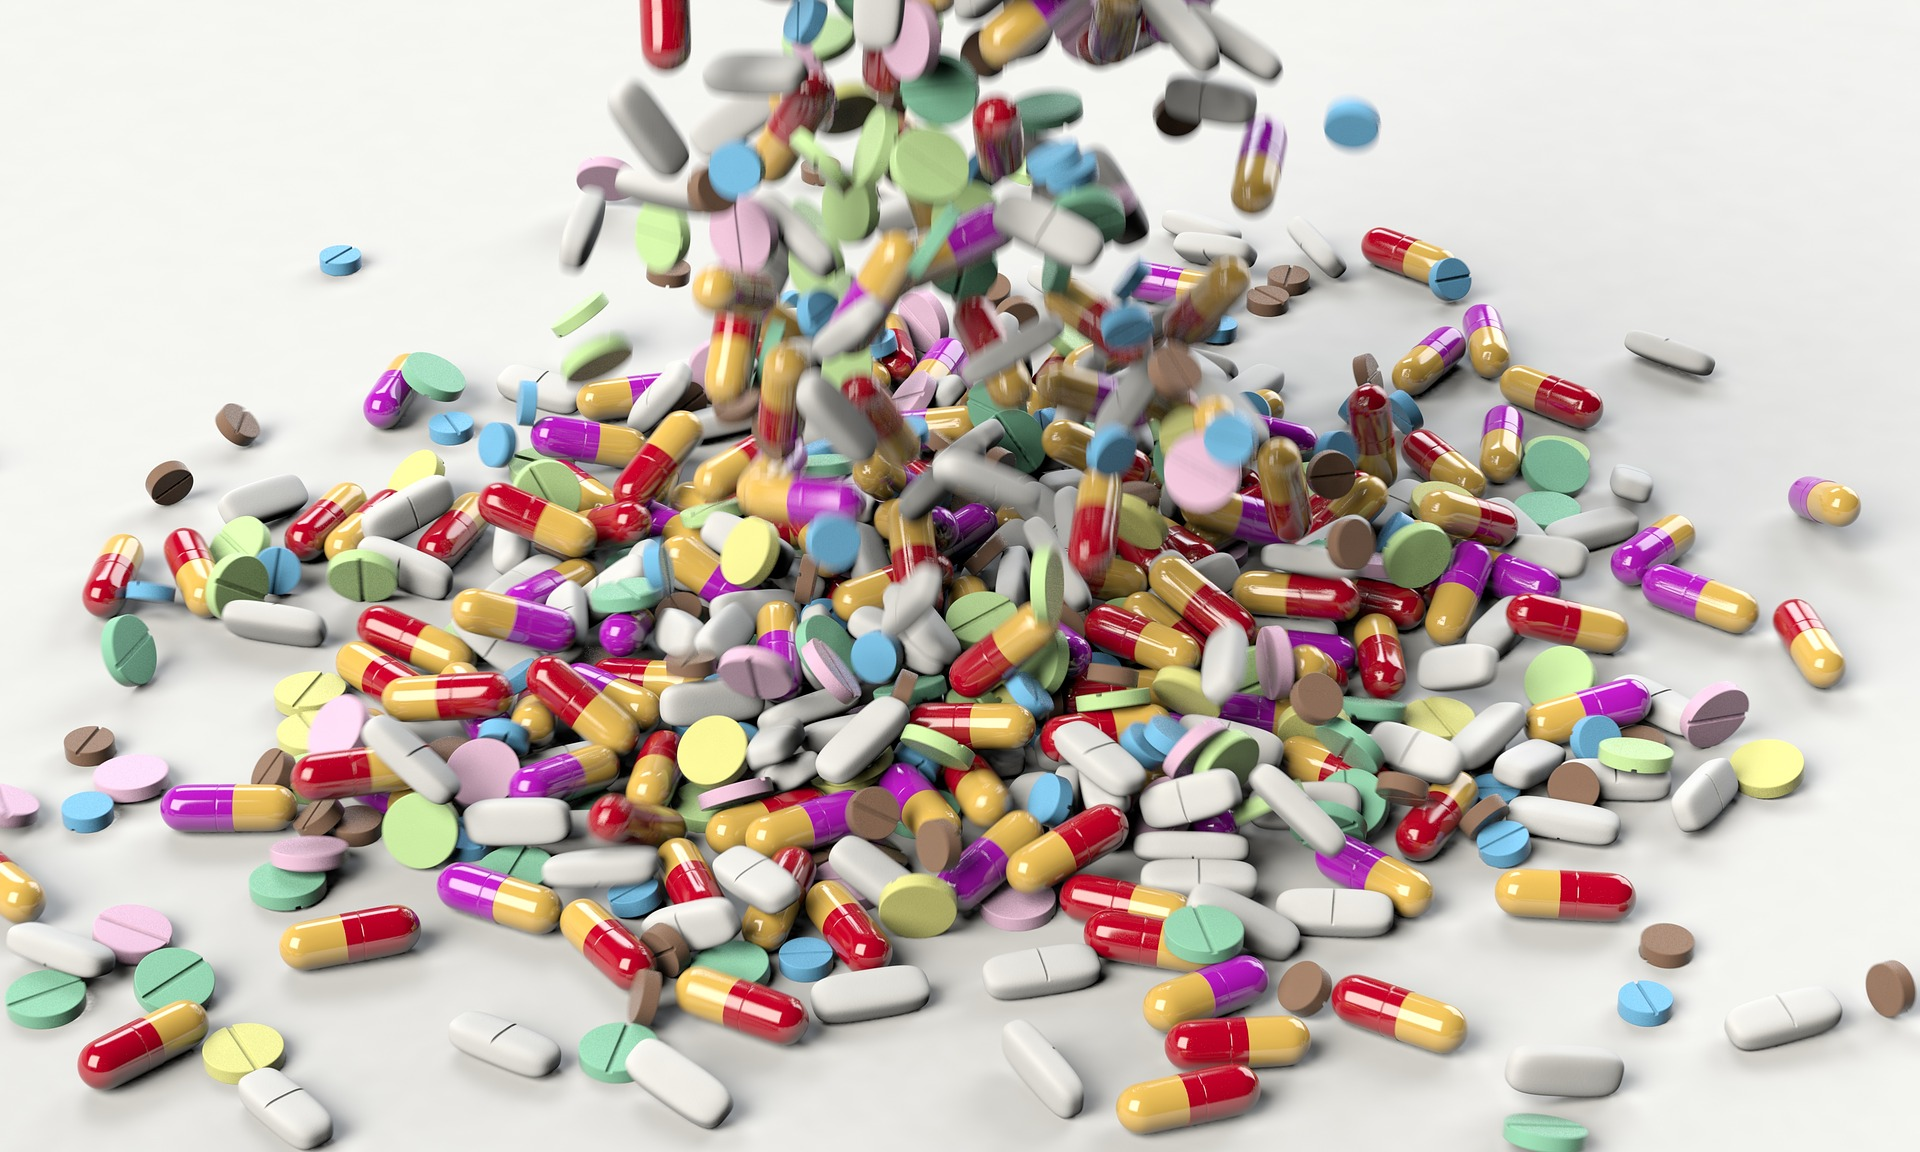 pharmaceuticals, vitamins, and supplements